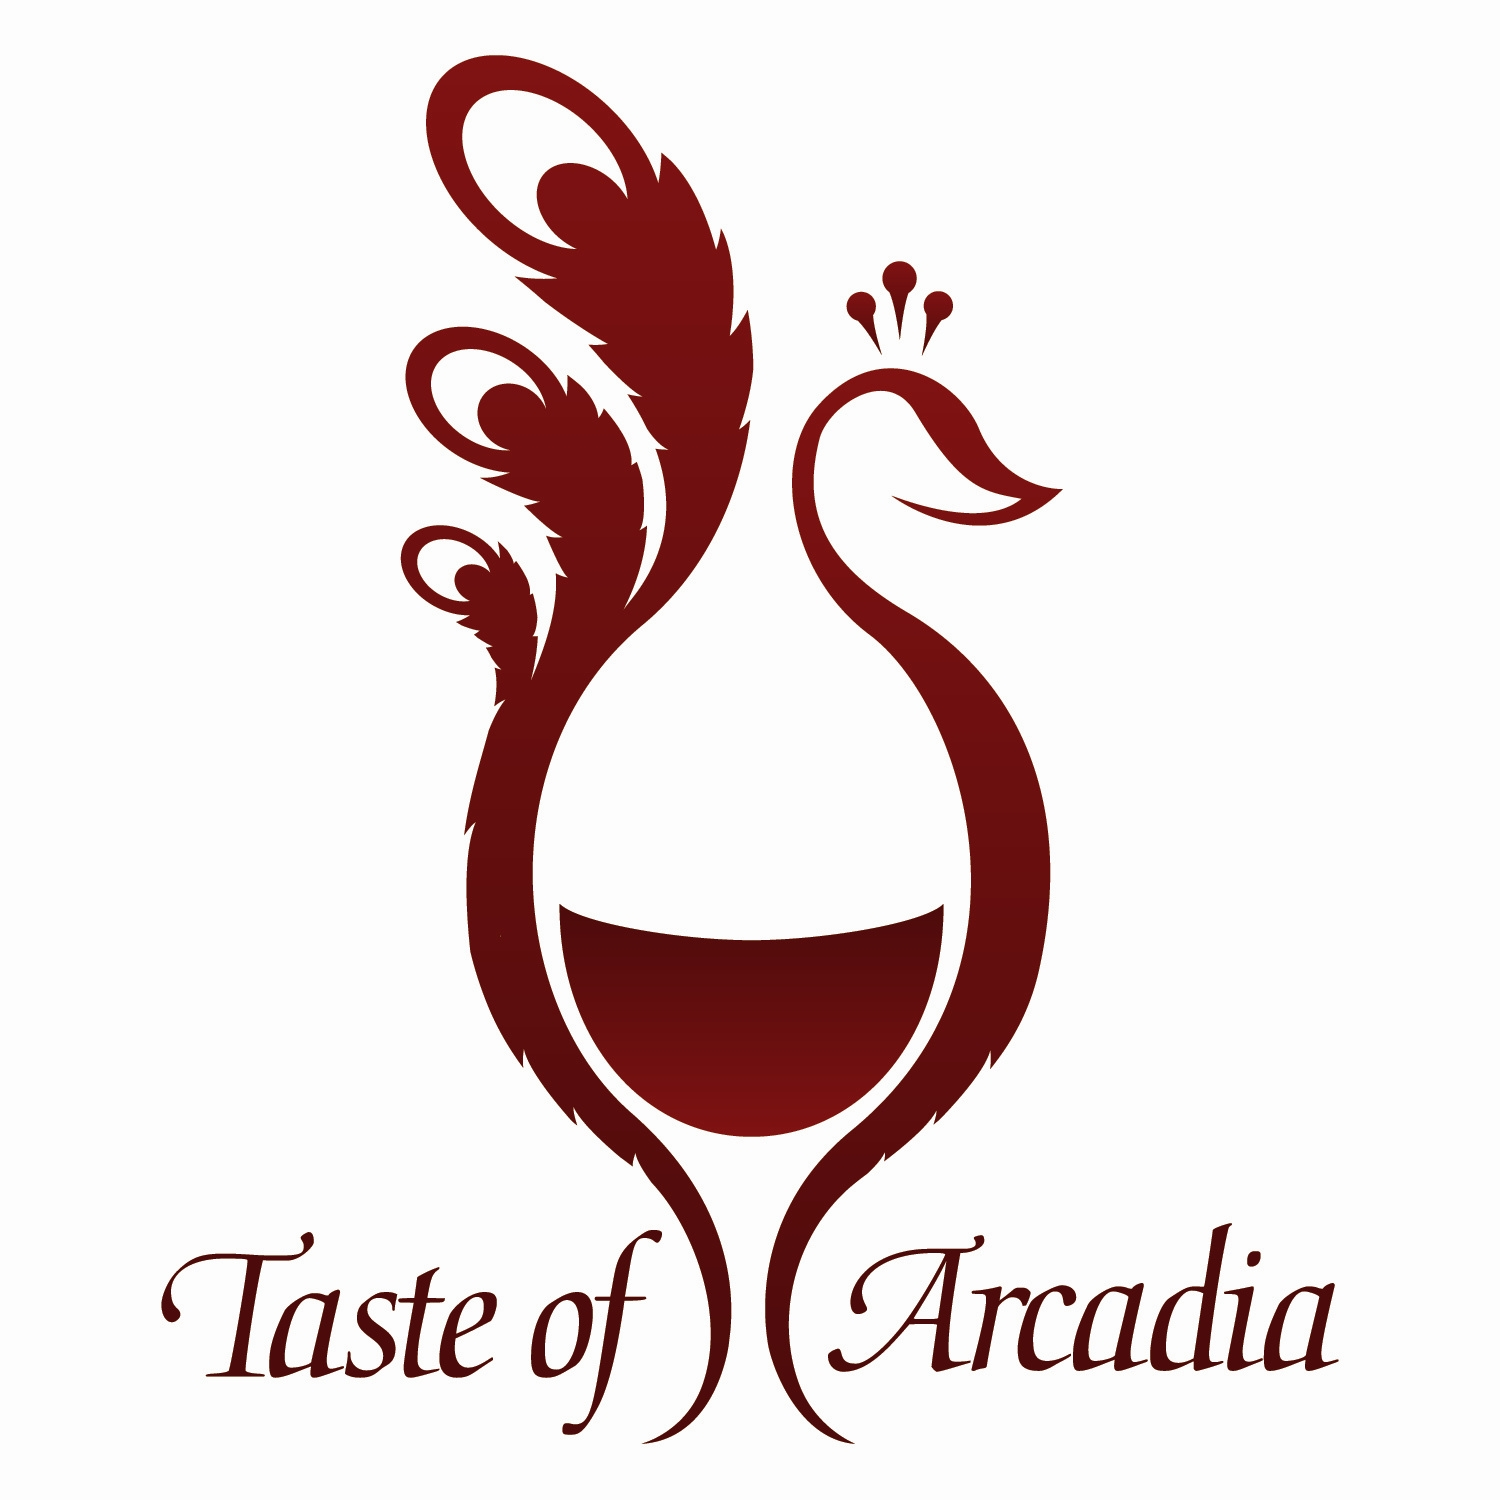 Food And Drink Logos And Names Names offering food and